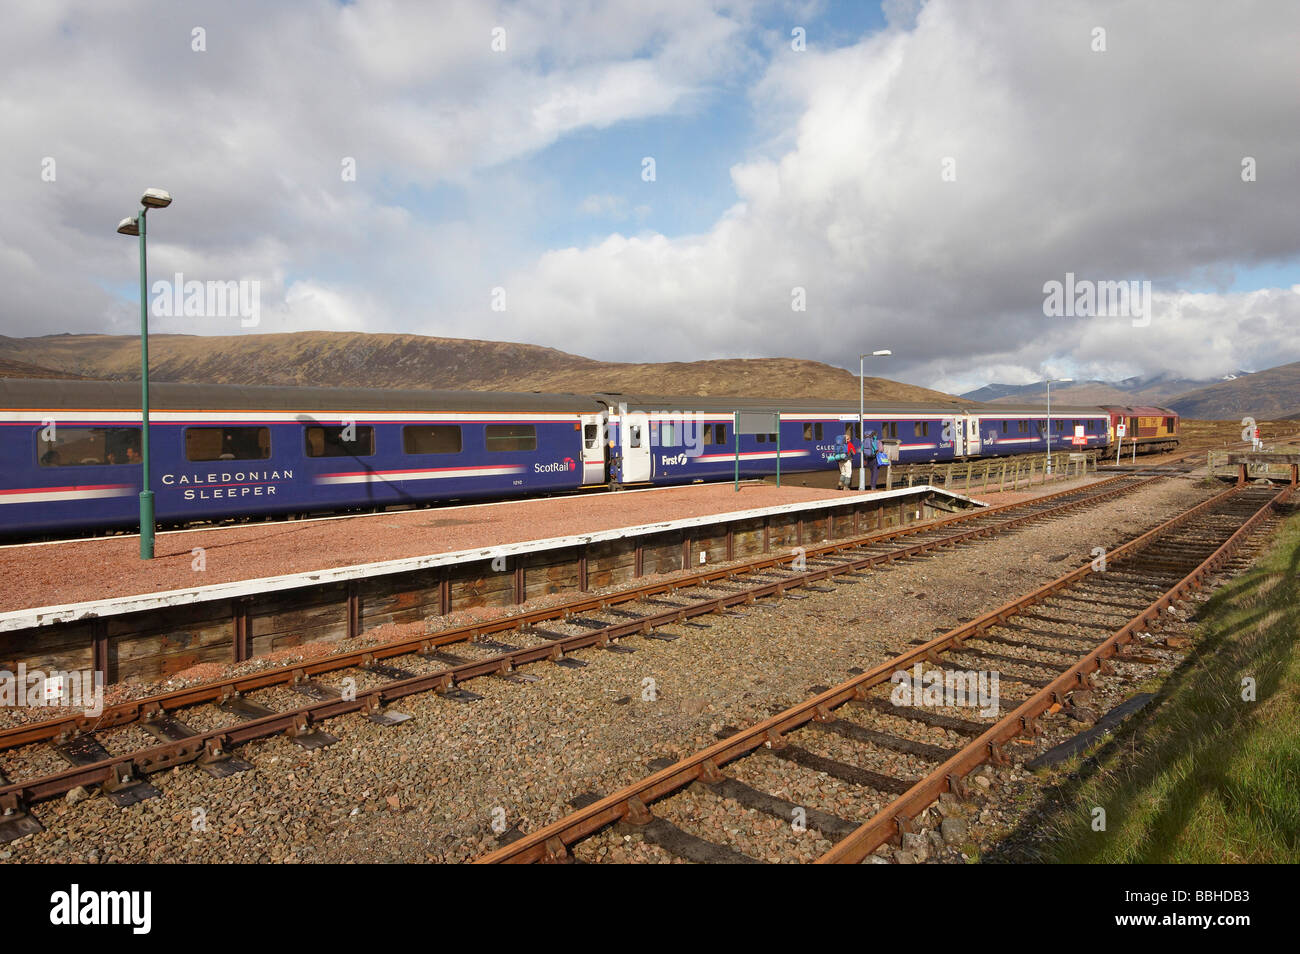 Caledonian Sleeper train in Corrour station - Stock Image